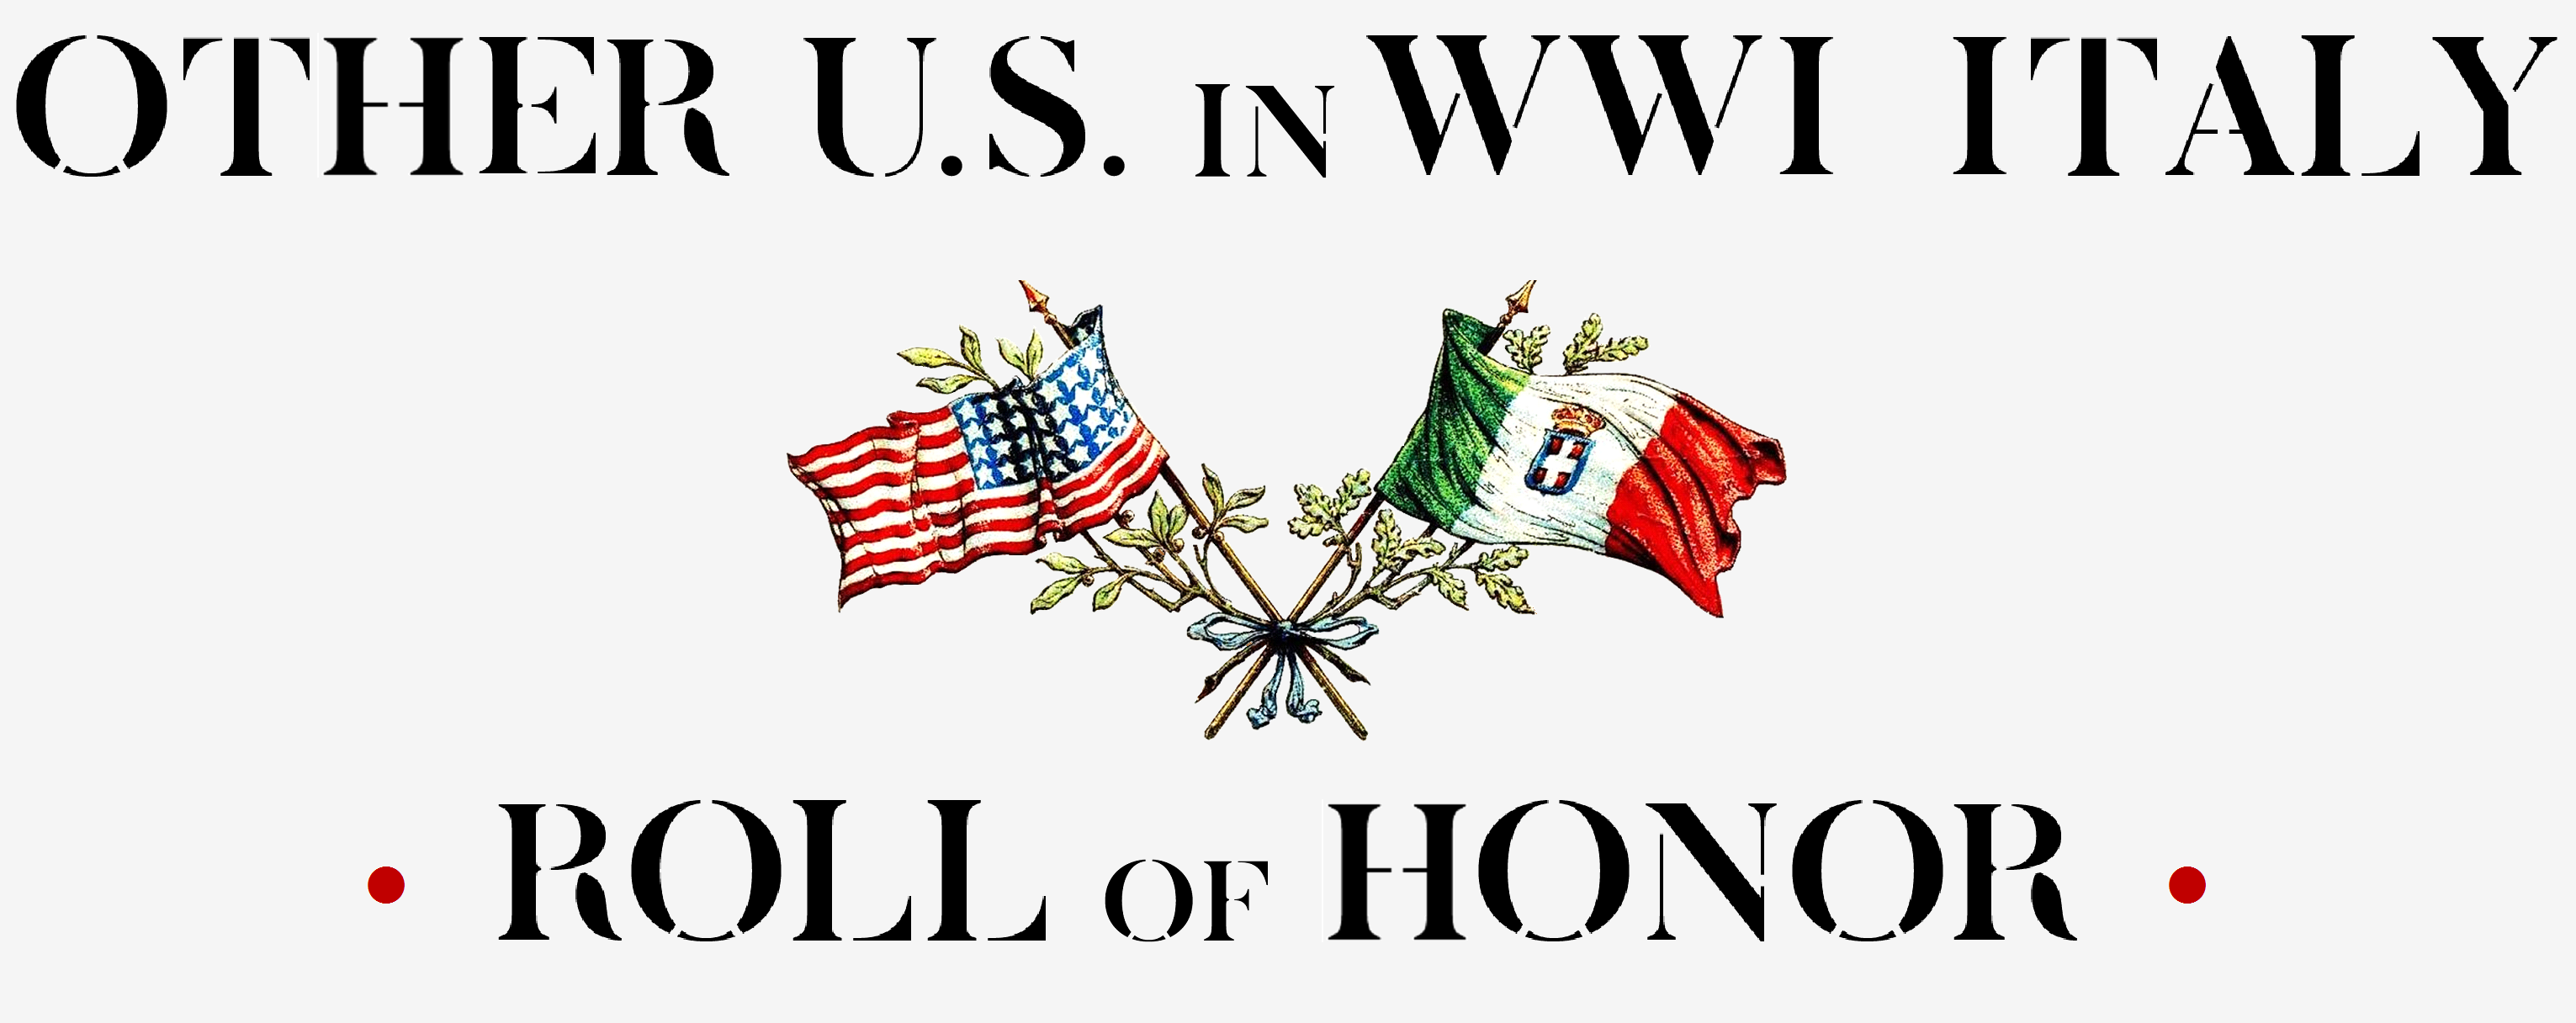 Other US ROLLofHONOR header 22Feb2019 v3